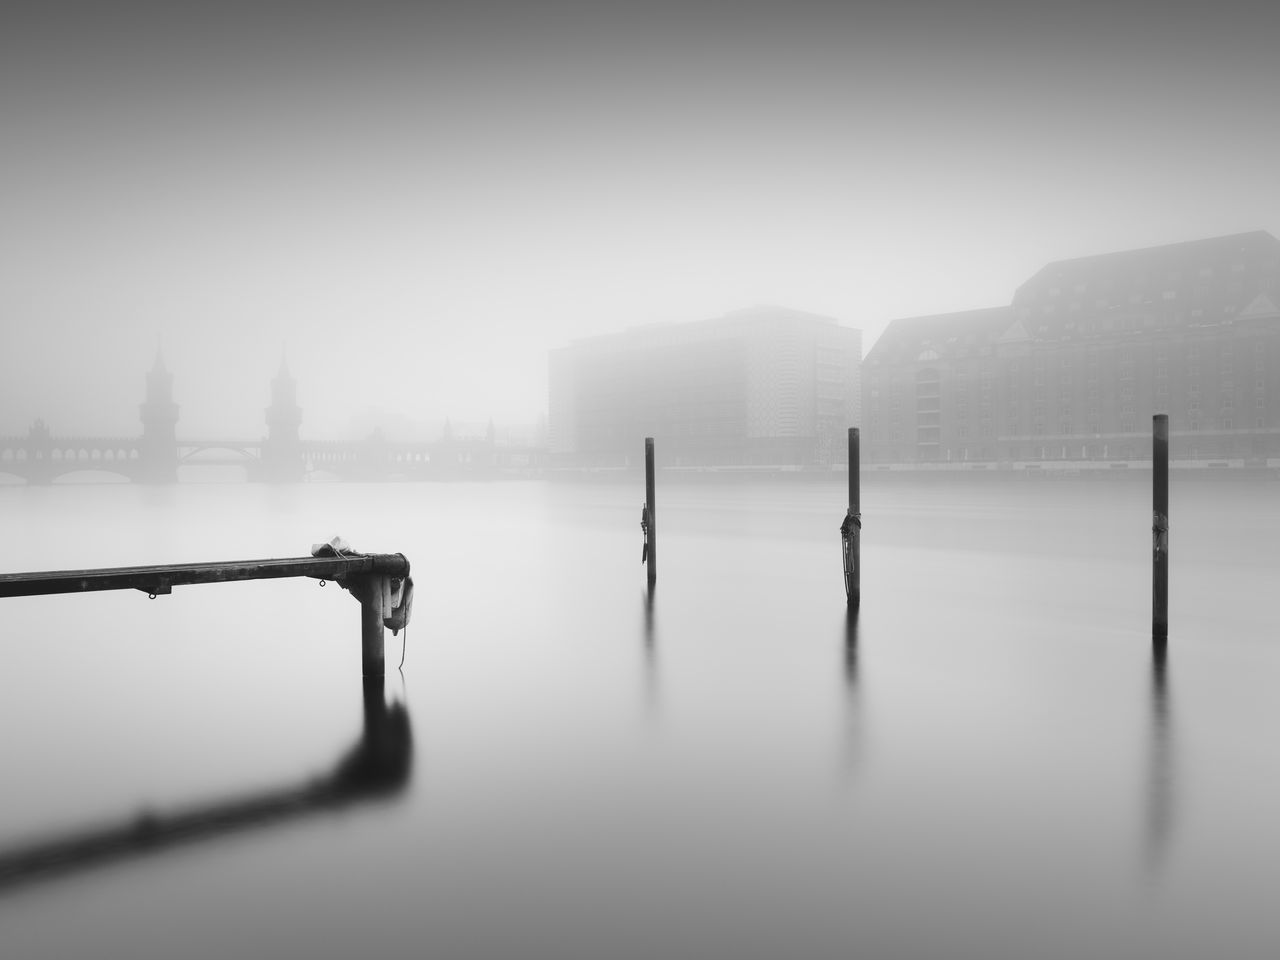 Pier at the Oberbaumbridge in Berlin Berlin Berlin Friedrichshain Berlin Kreuzberg Berlinstagram Black And White City City Cityscape Day Fine Art Fineart_photobw Fog Foggy Day Foggy Weather Longexposure Nature No People Oberbaumbridge Oberbaumbrücke Outdoors Philipp Dase Sky Travel Destinations Urban Icon Water